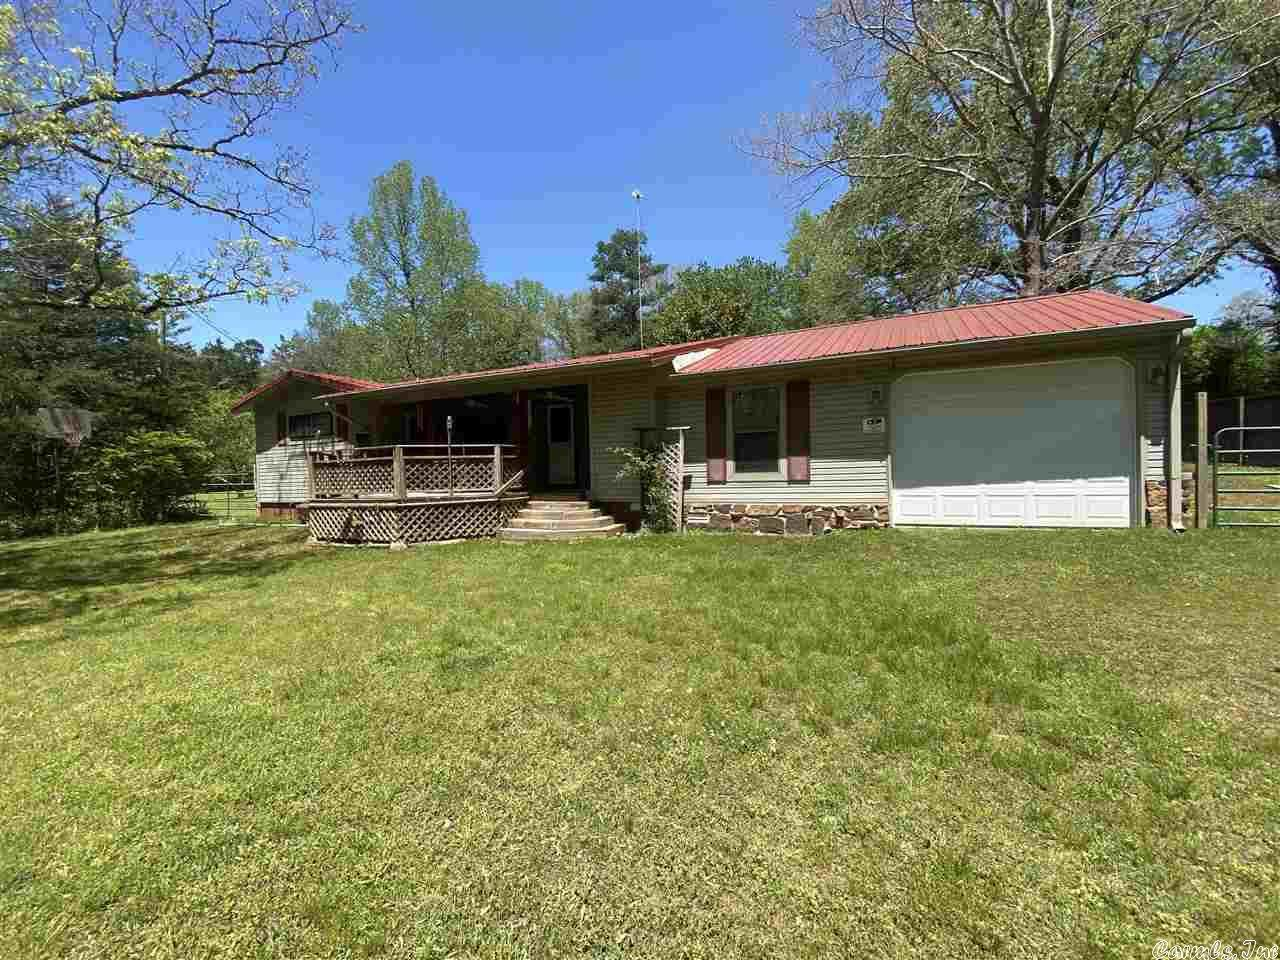 845 Old Choctaw Rd. - Photo 1